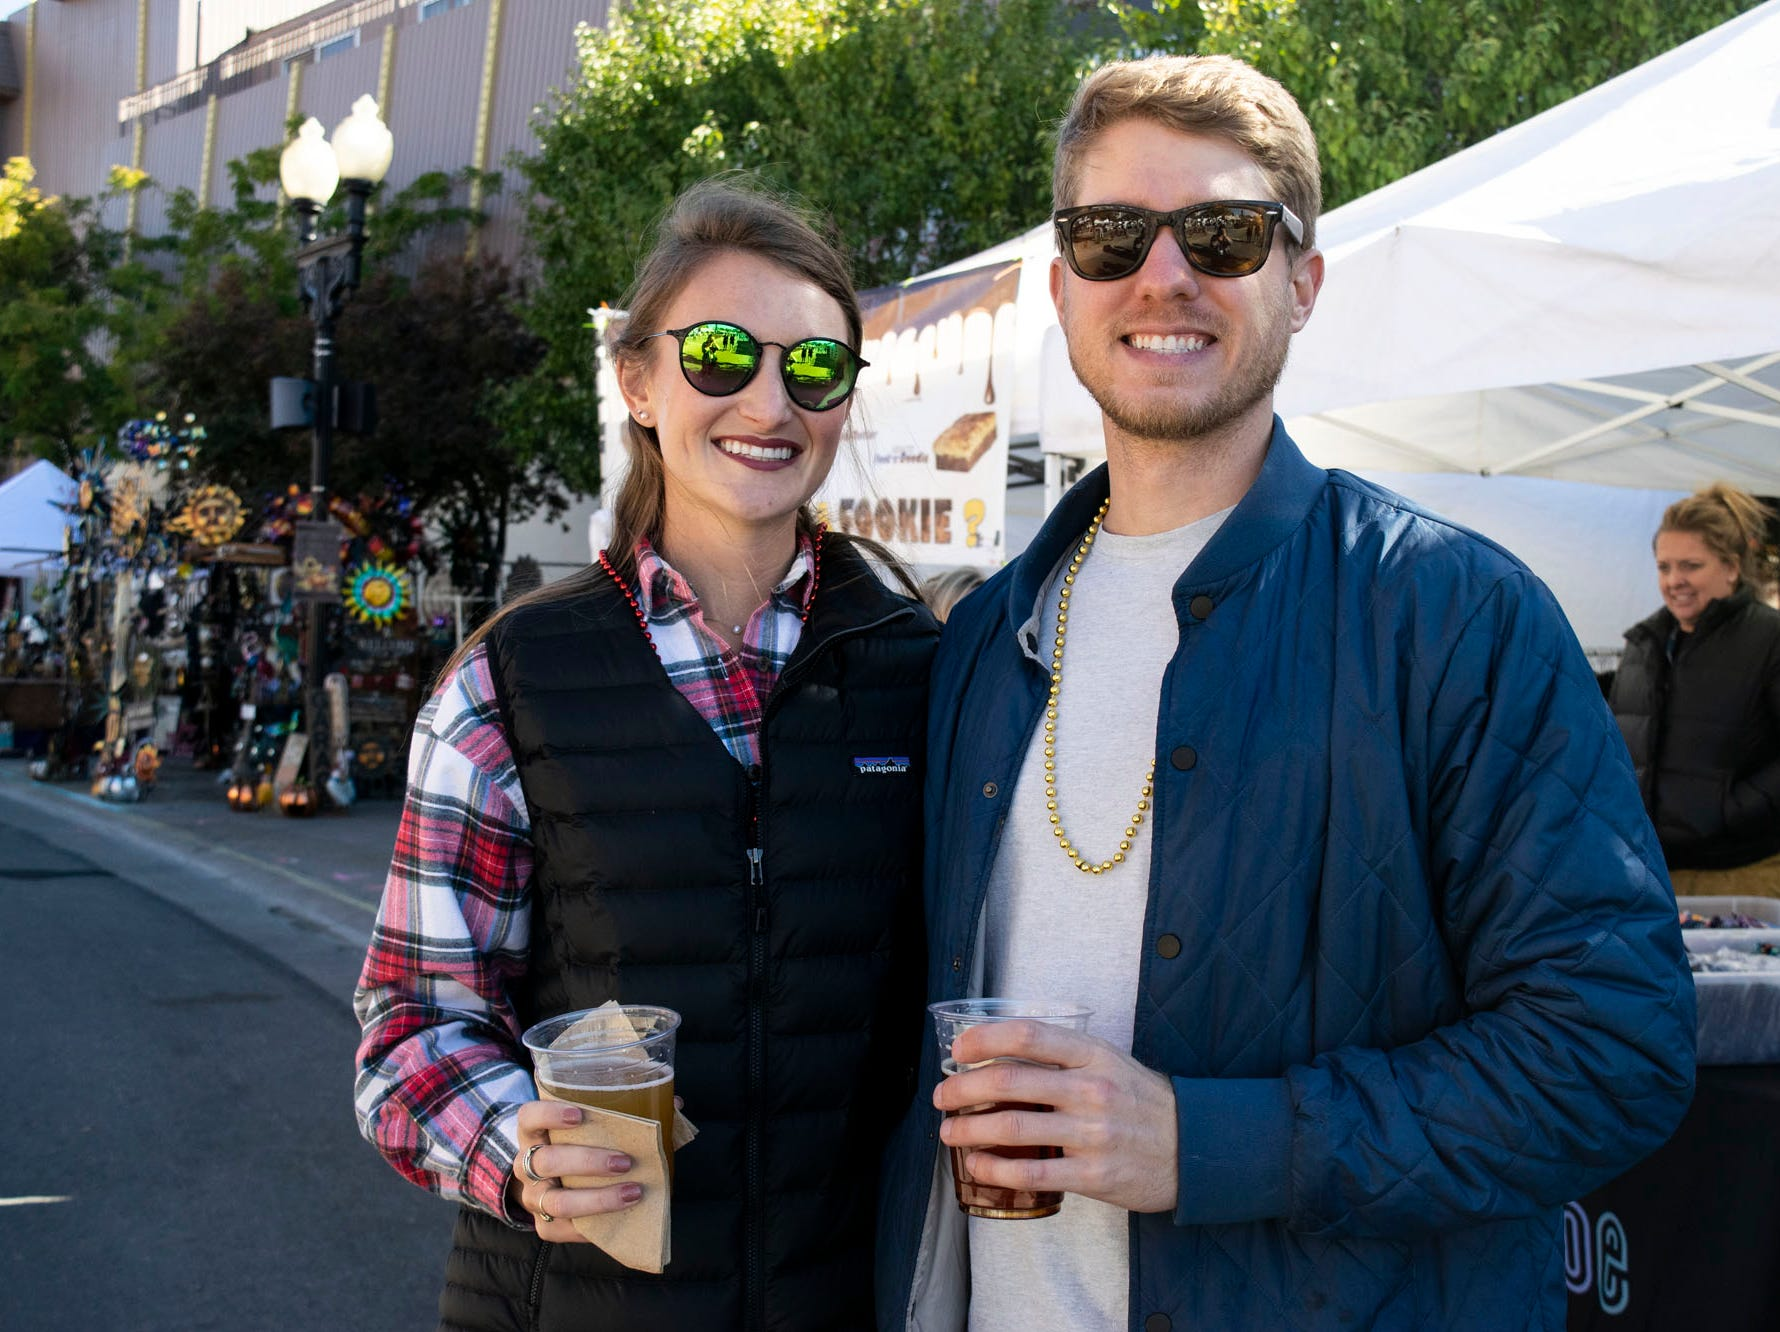 Mallory Cushner and Chris Daigle attend the Nugget's Southern Fare on the Square on Sunday, Oct. 14, 2018. Sparks, Nev.